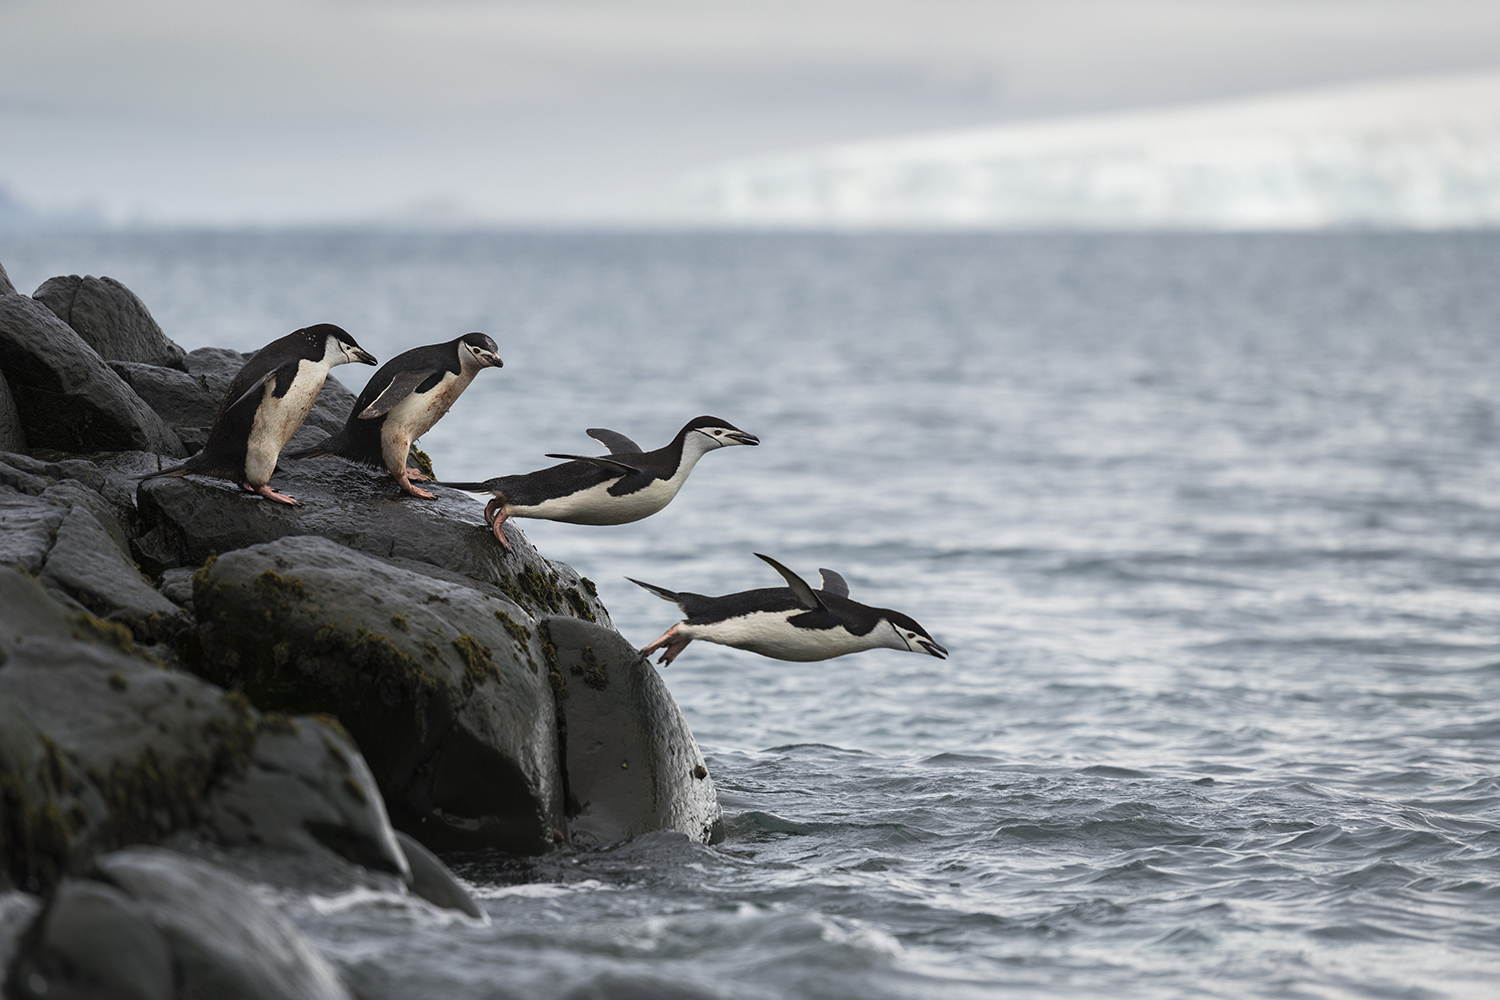 Chinstrap penguins diving into the ocean at Snow Island, South Shetlands, Antarctica.